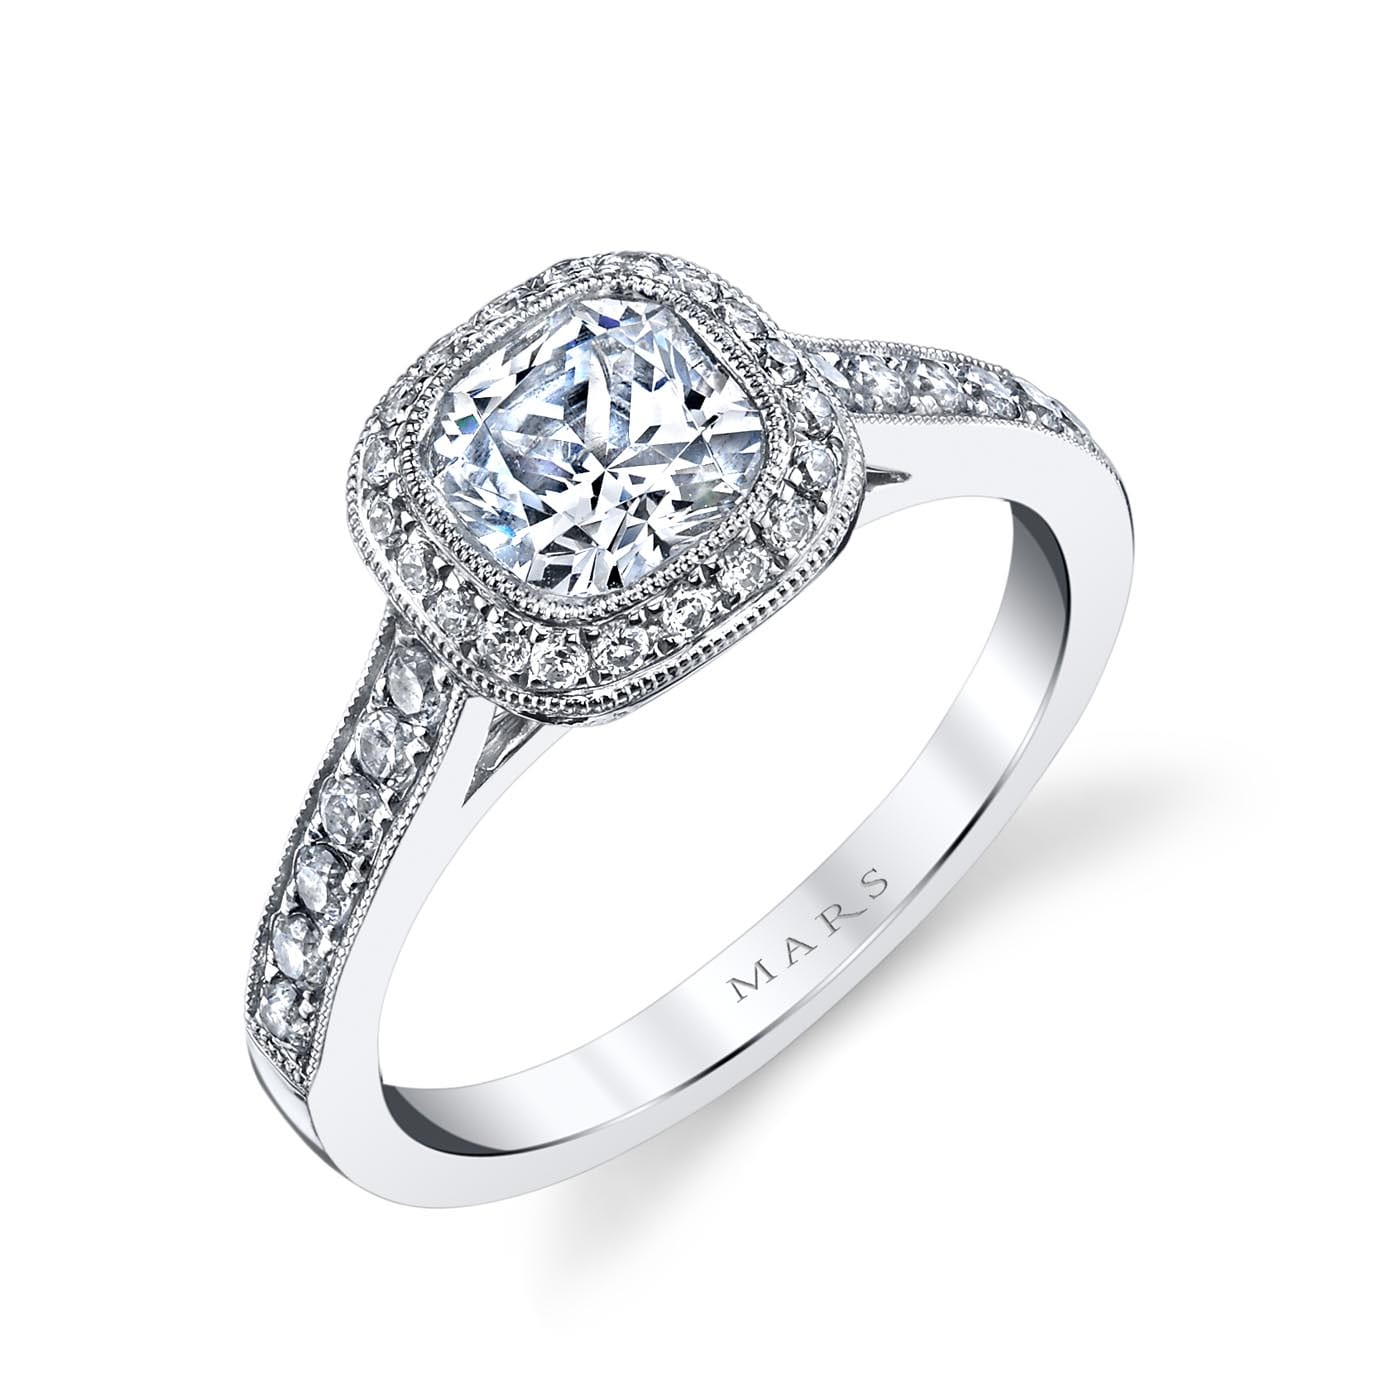 Halo Engagement RingStyle #: MARS 25400